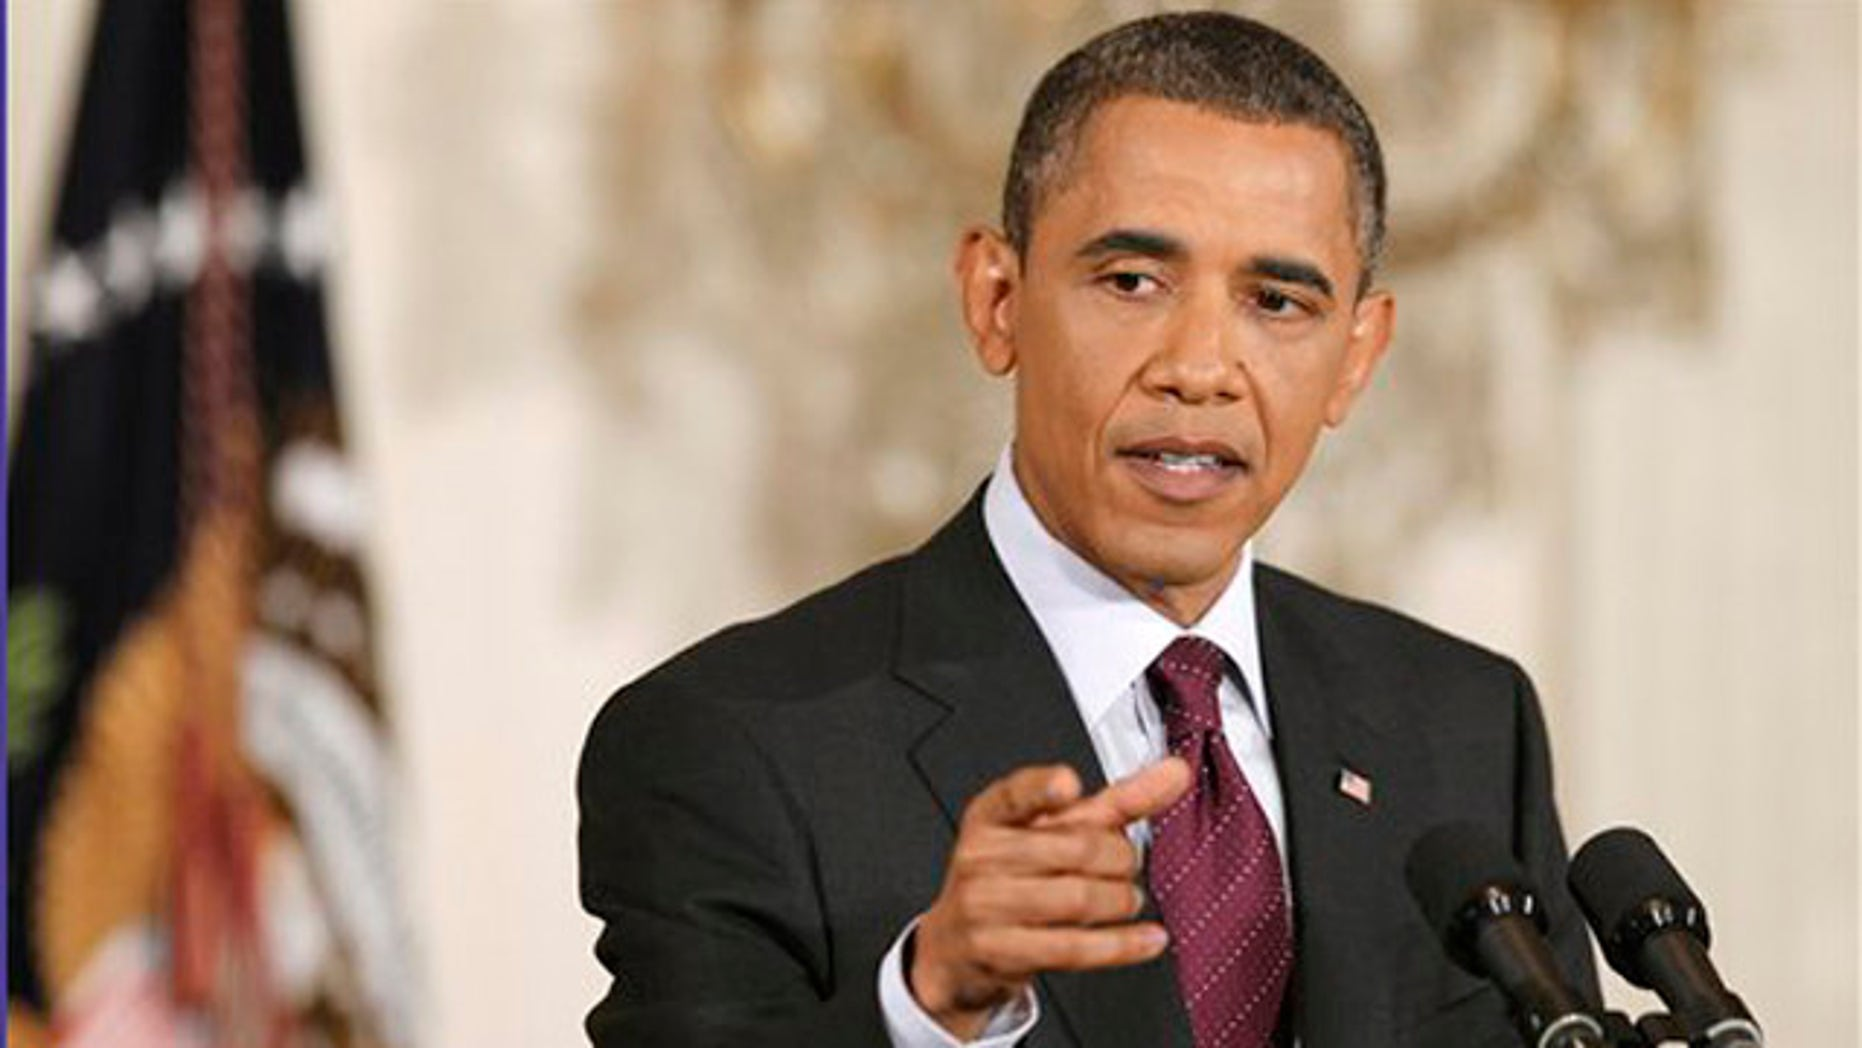 President Obama gestures during a news conference in the East Room of the White House in Washington June 29.